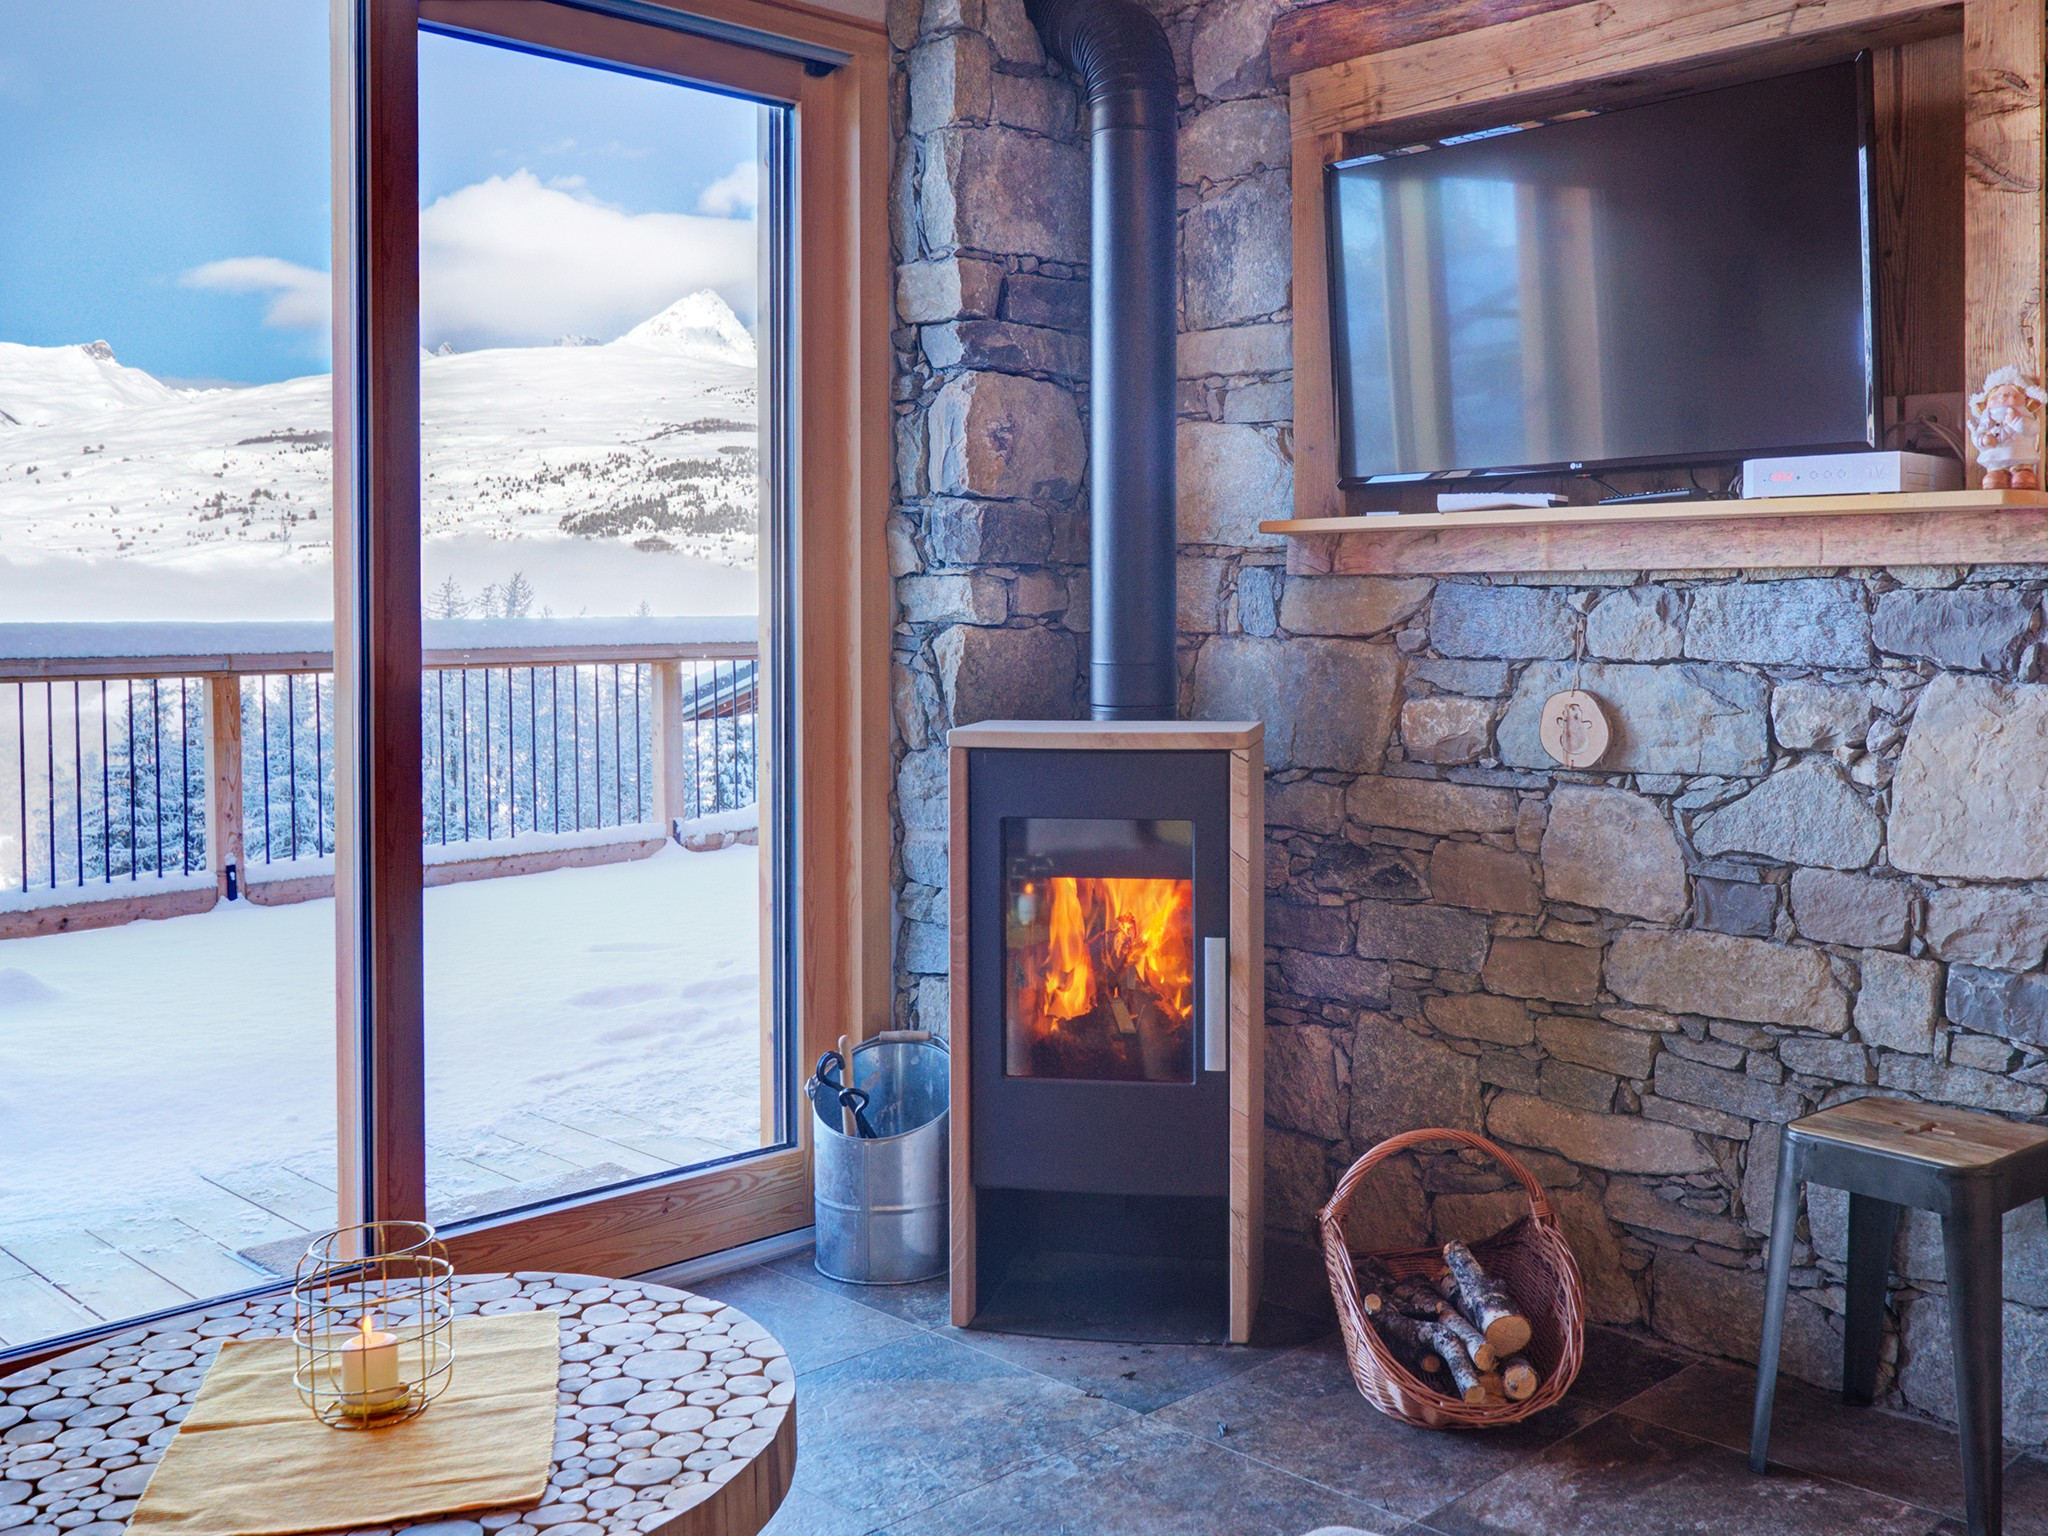 Chalet Ski Dream - fireplace